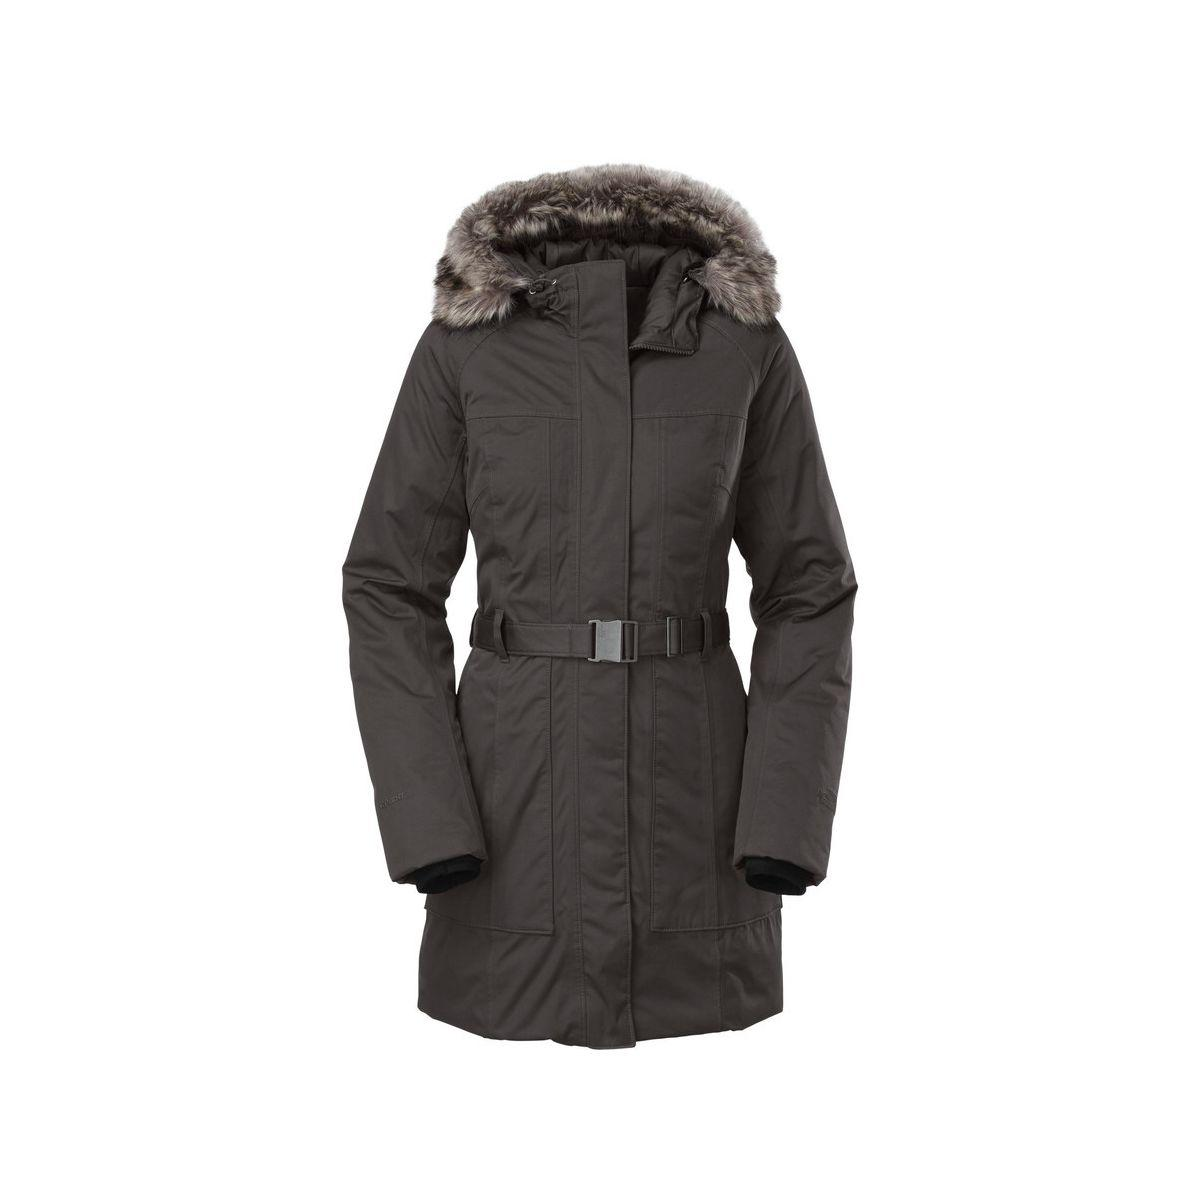 5d7896aac93 Lyst - The North Face Brooklyn Down Jacket in Gray